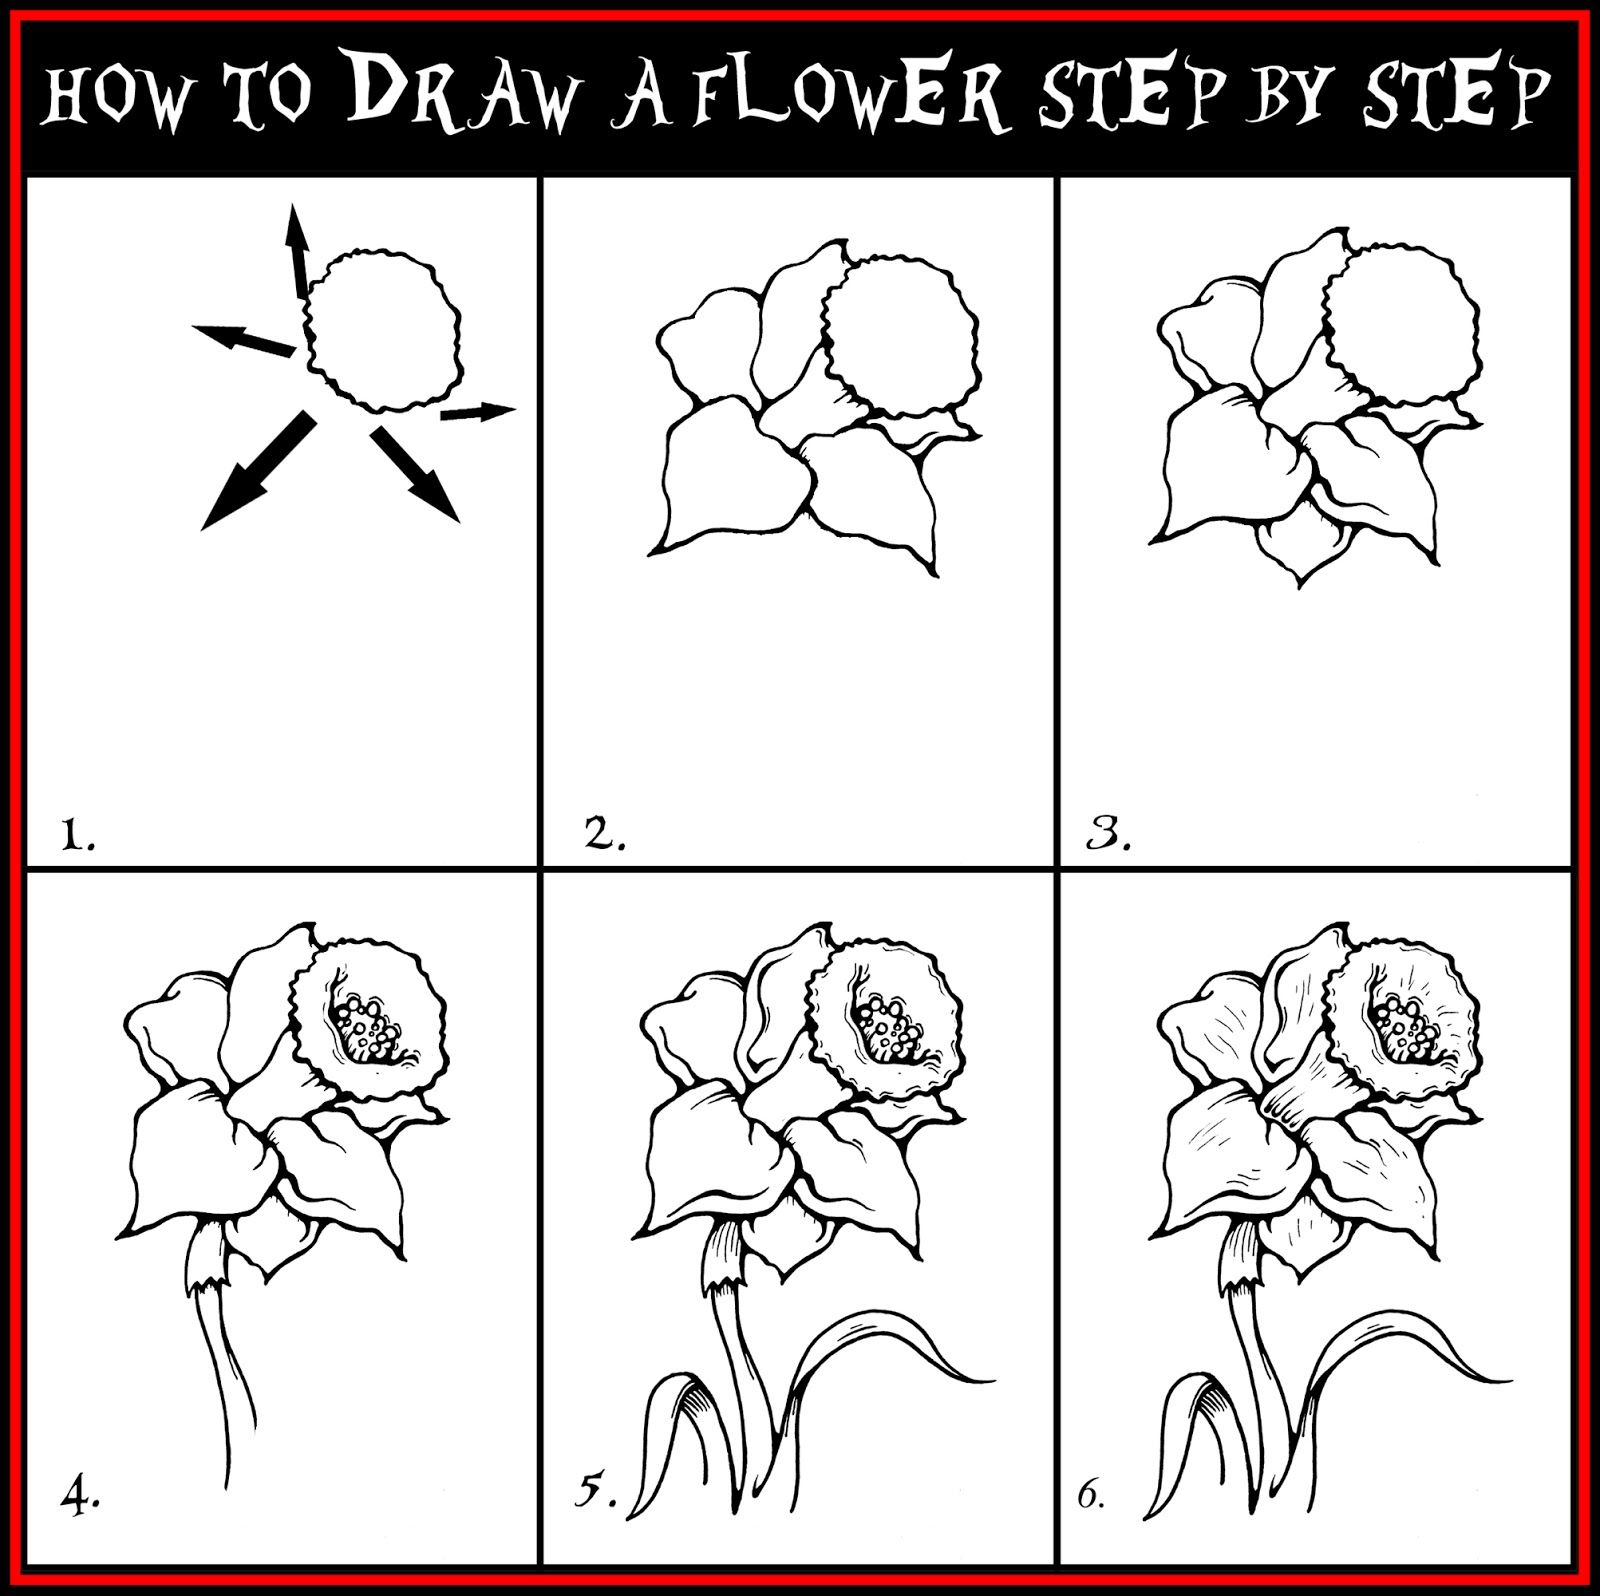 How To Draw A Flower Step By Step Drawing Guide | Flower ...